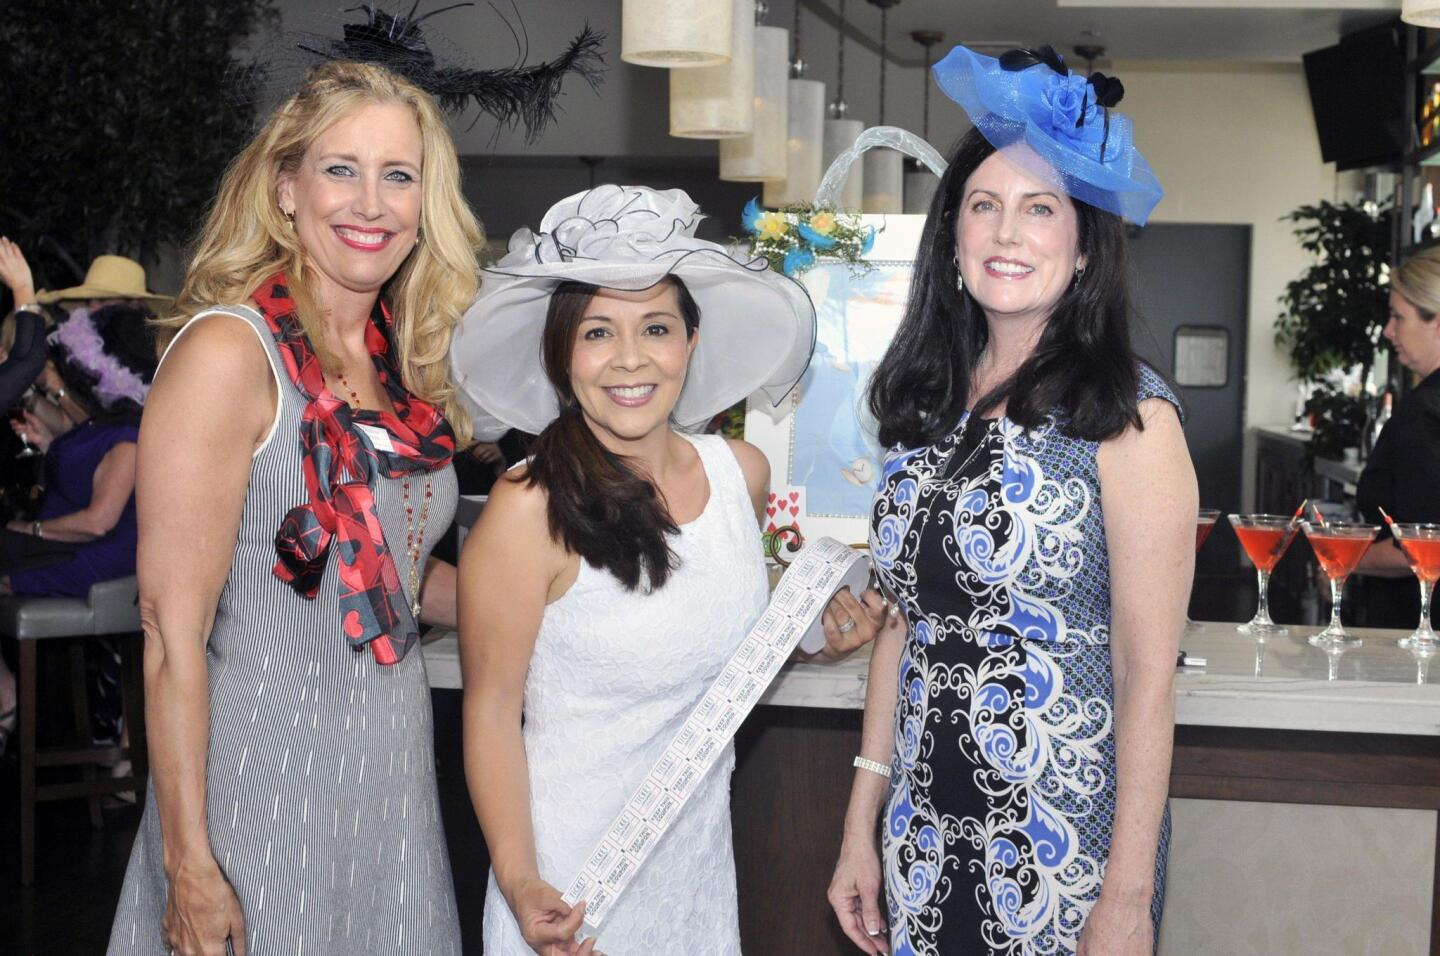 Event chair Denise Stein, Lory Fisher, Suzan Isber